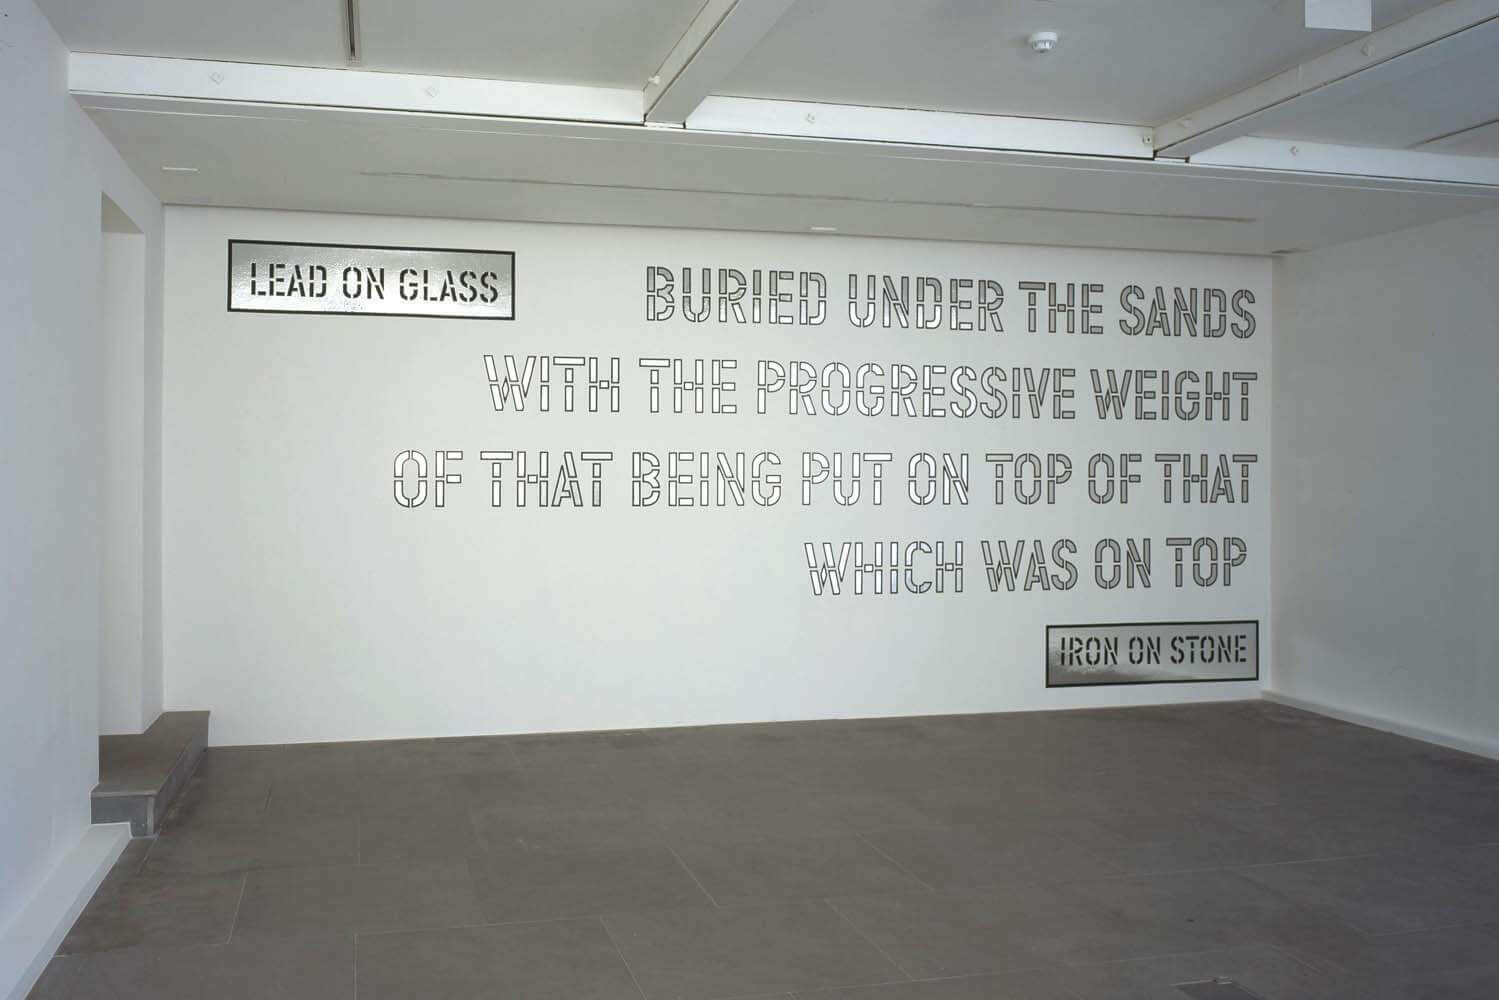 Inspirational Wall Stickers Quotes Lead On Glass Lawrence Weiner Artists Lisson Gallery